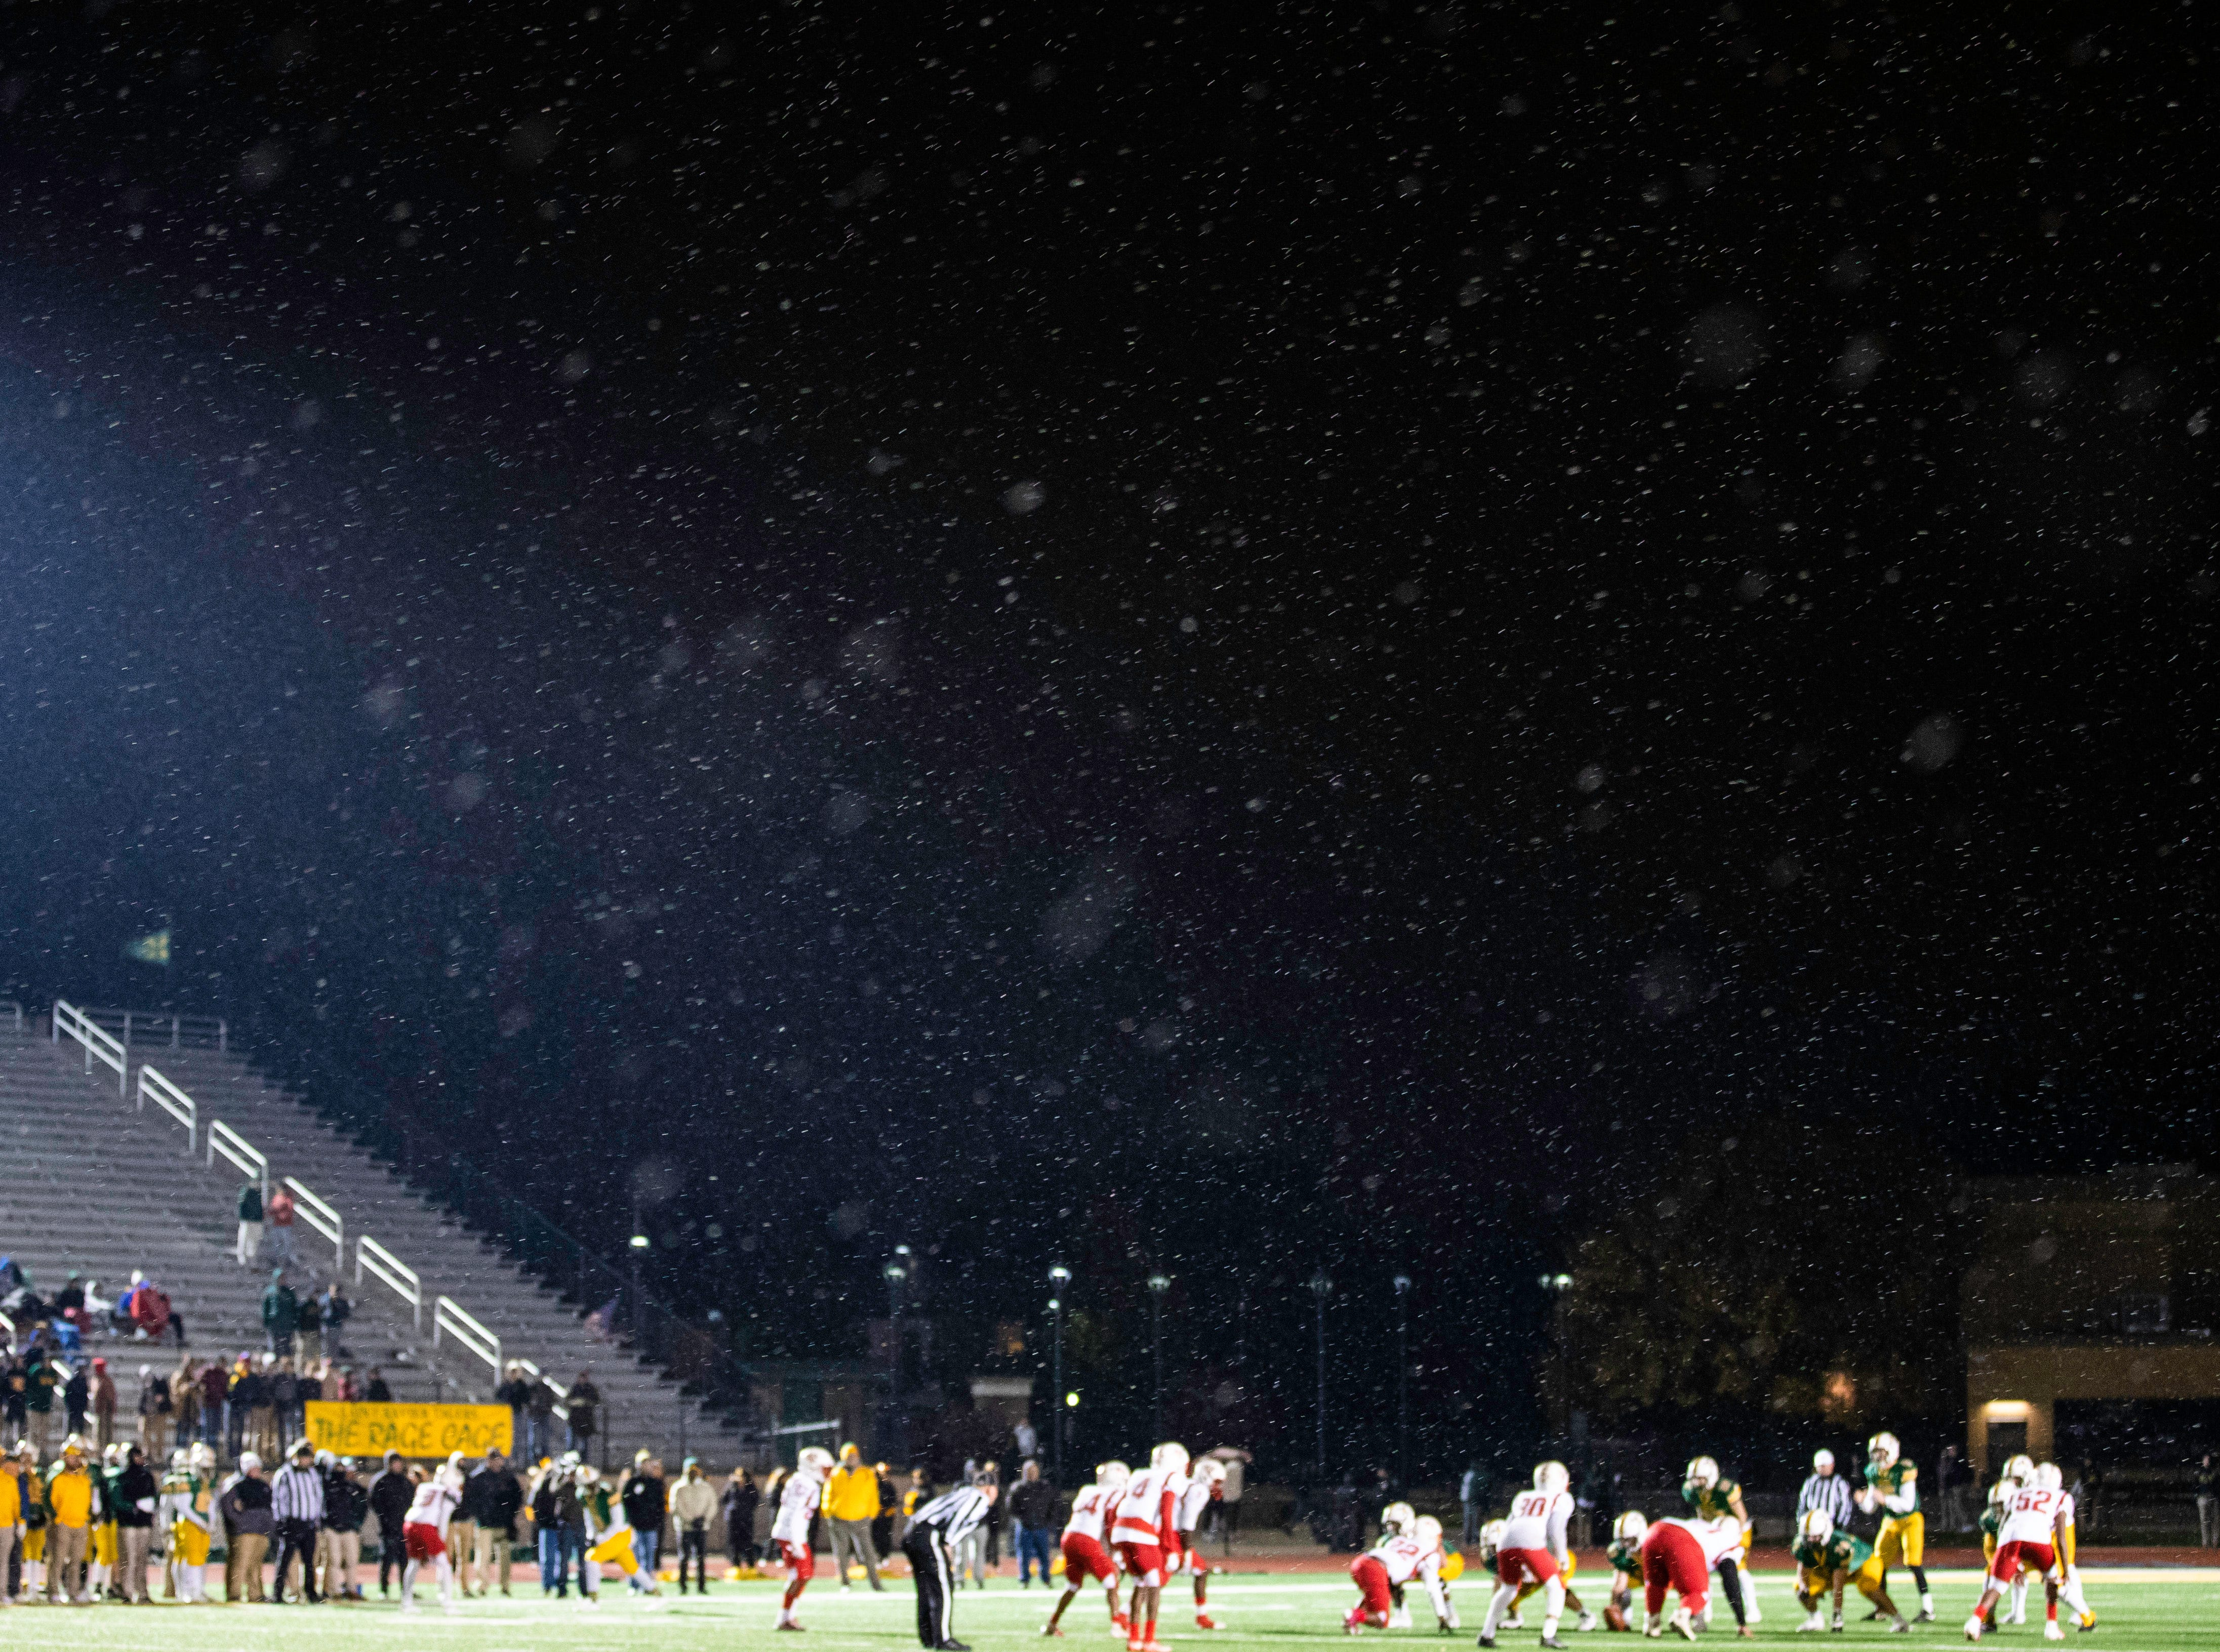 Snow fell late in the fourth quarter of KHSAA regional playoff game between the Butler Bears and St. Xavier Tigers at St. Xavier High School, Friday, Nov. 9, 2018.